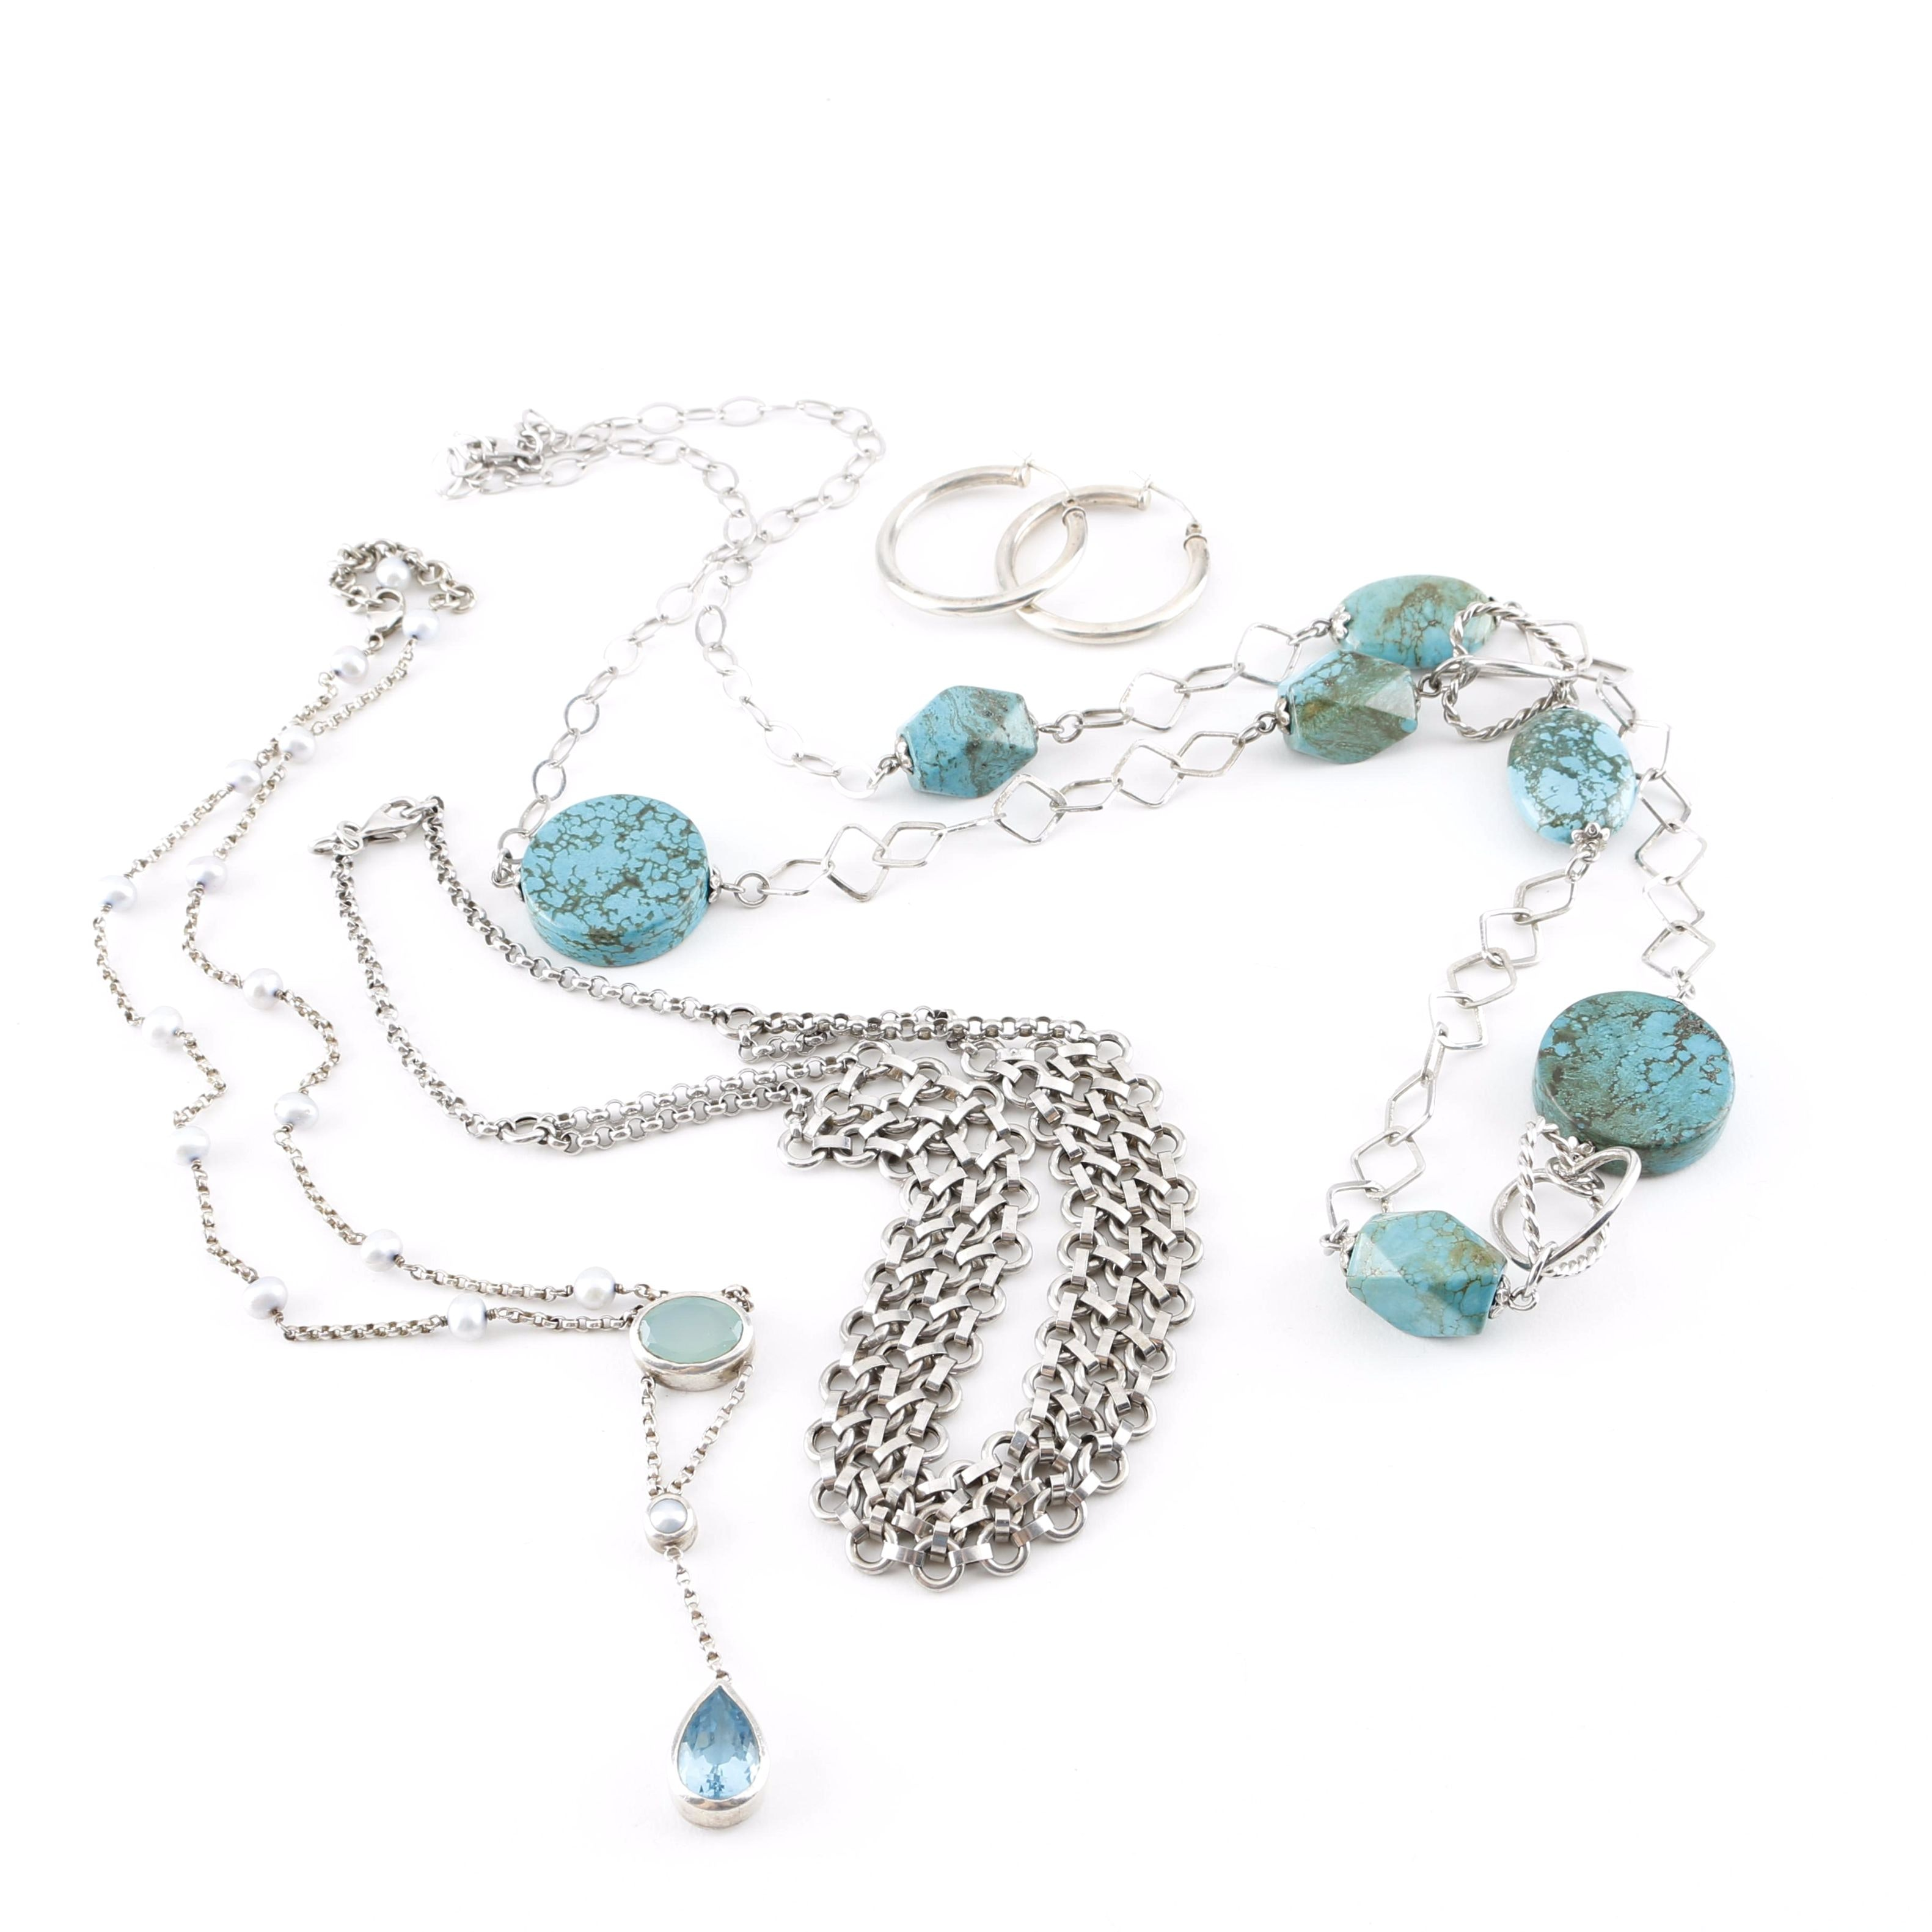 Sterling Silver Necklaces and Earrings Including Turquoise